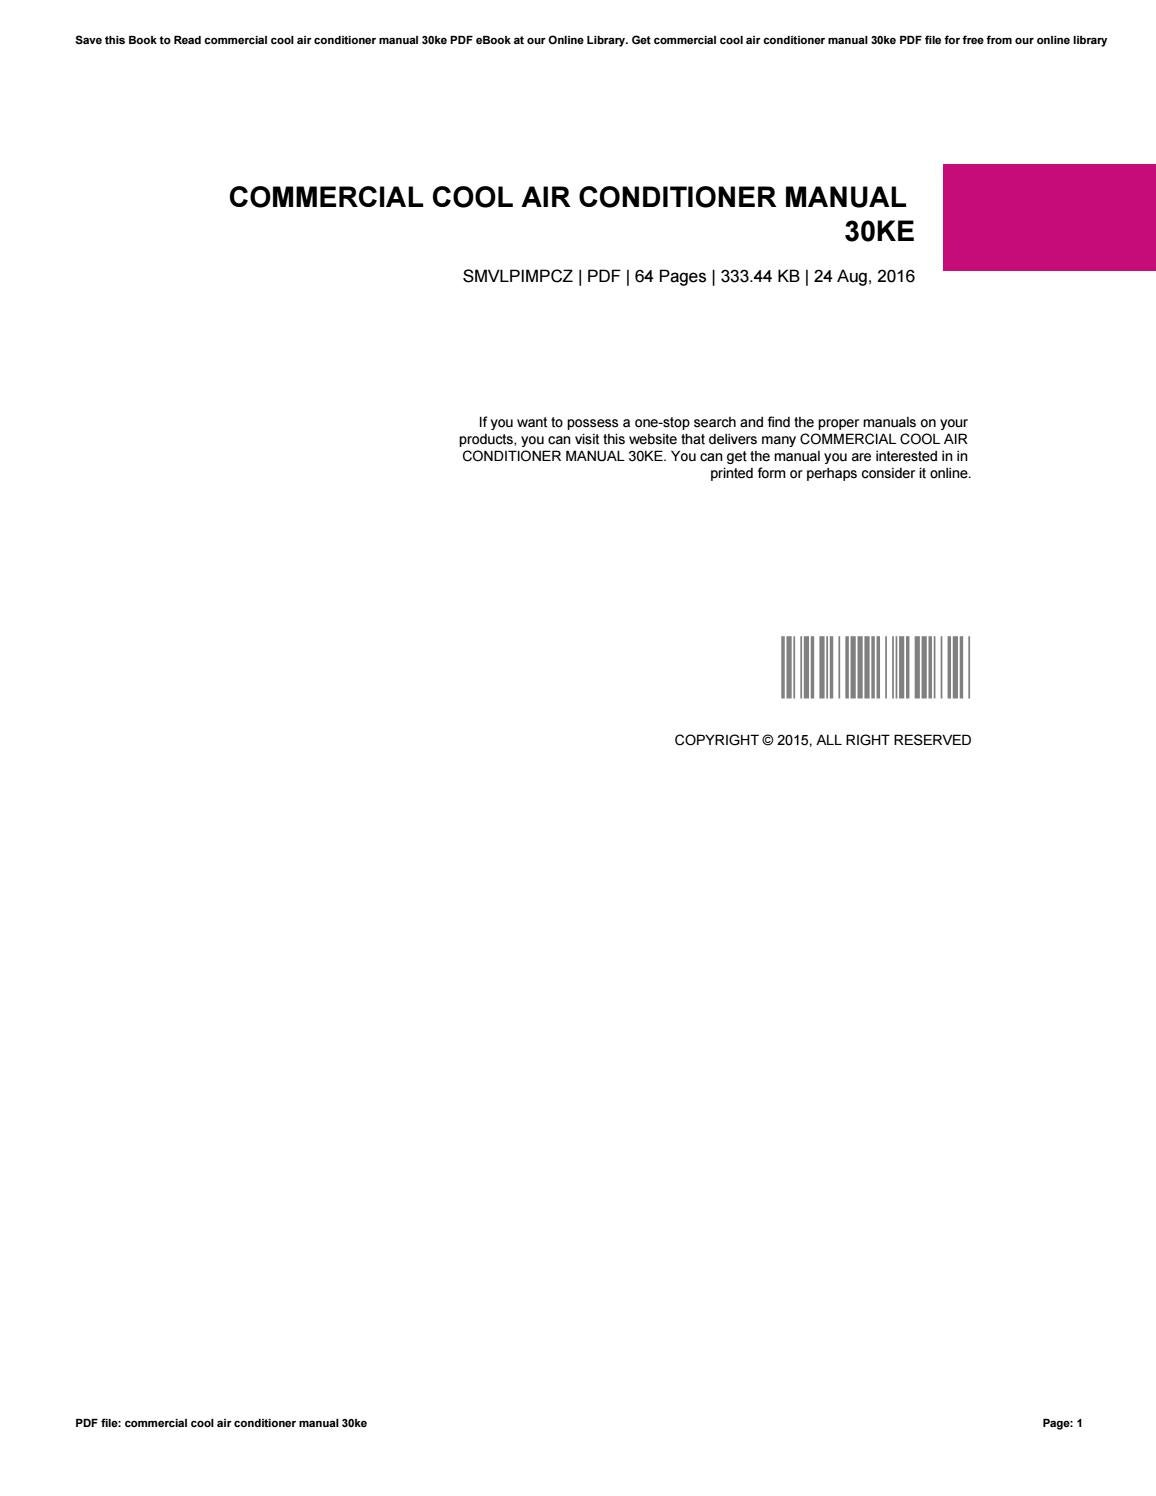 Commercial cool Air conditioner Manual haier